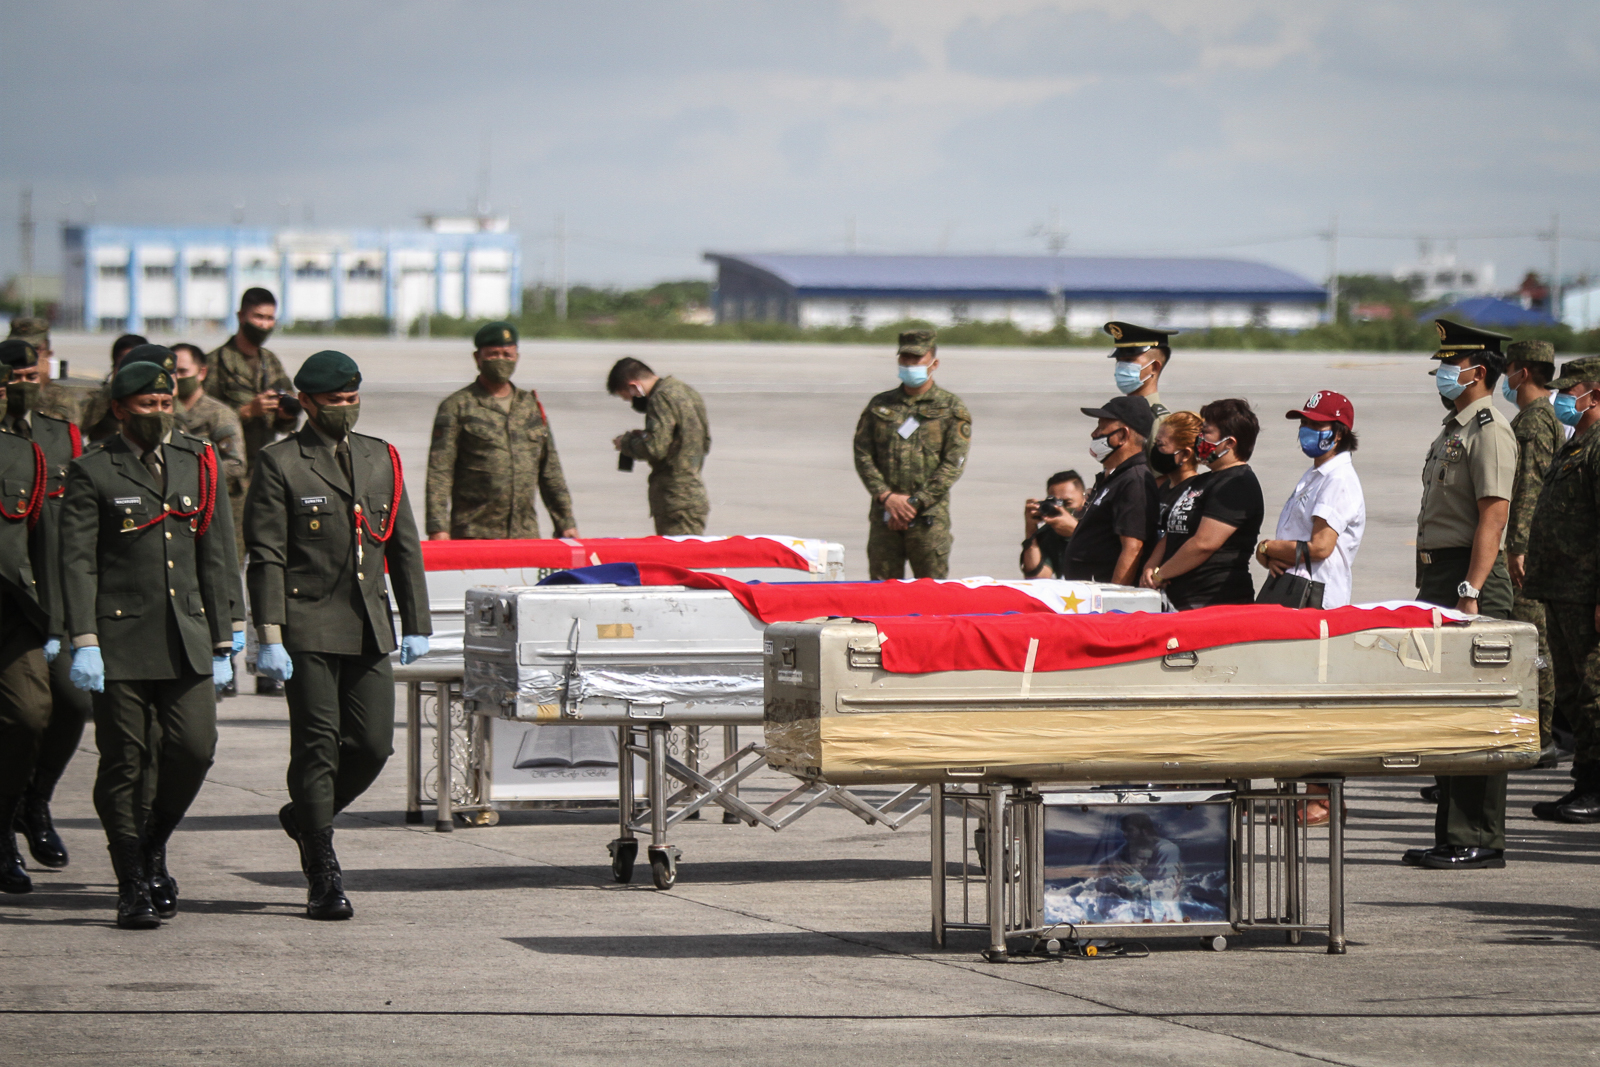 MEMORIAL. The Philippine Army renders arrival honors to the remains of the three soldiers, who were killed in Jolo, Sulu yesterday at Colonel Jesus Villamor Air Base, Pasay City on June 30, 2020. Photo by Inoue Jaena/Rappler